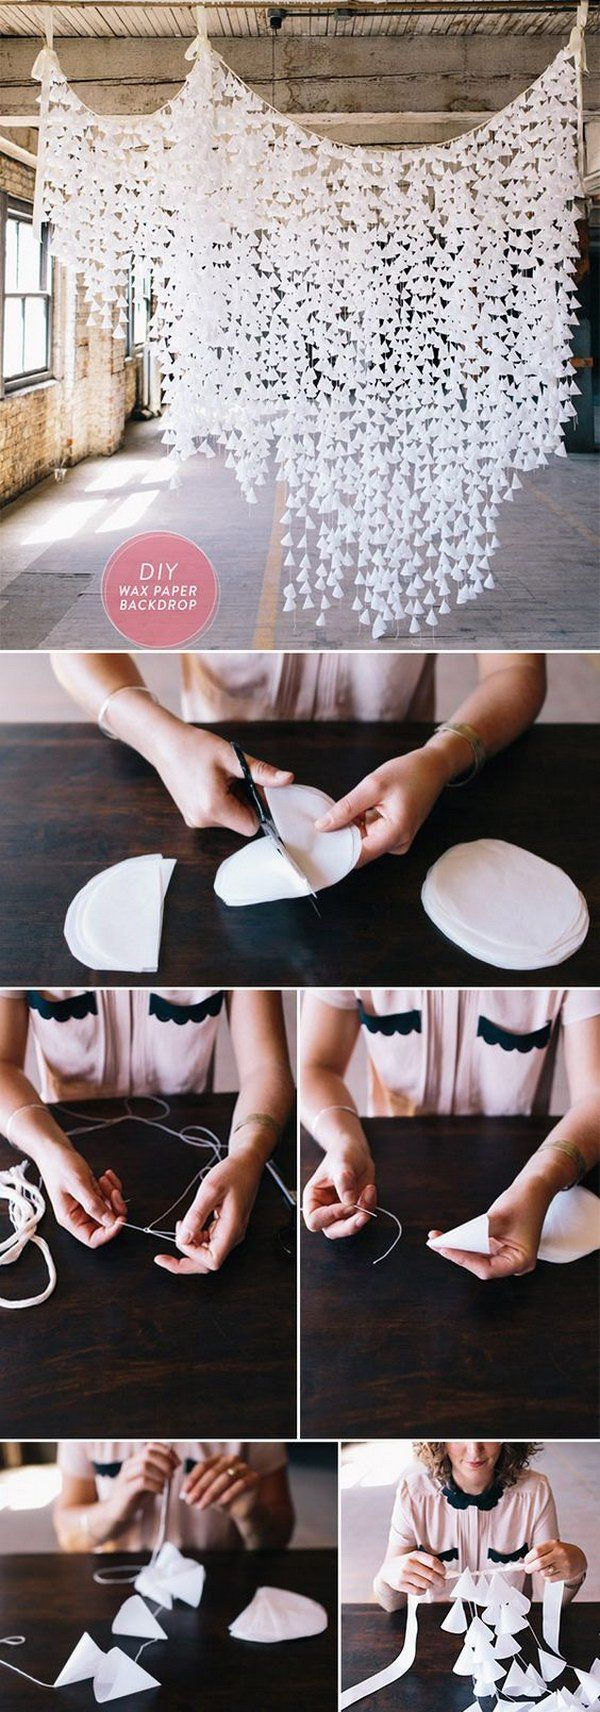 DIY Wax Paper Backdrop                                                                                                                                                                                 More